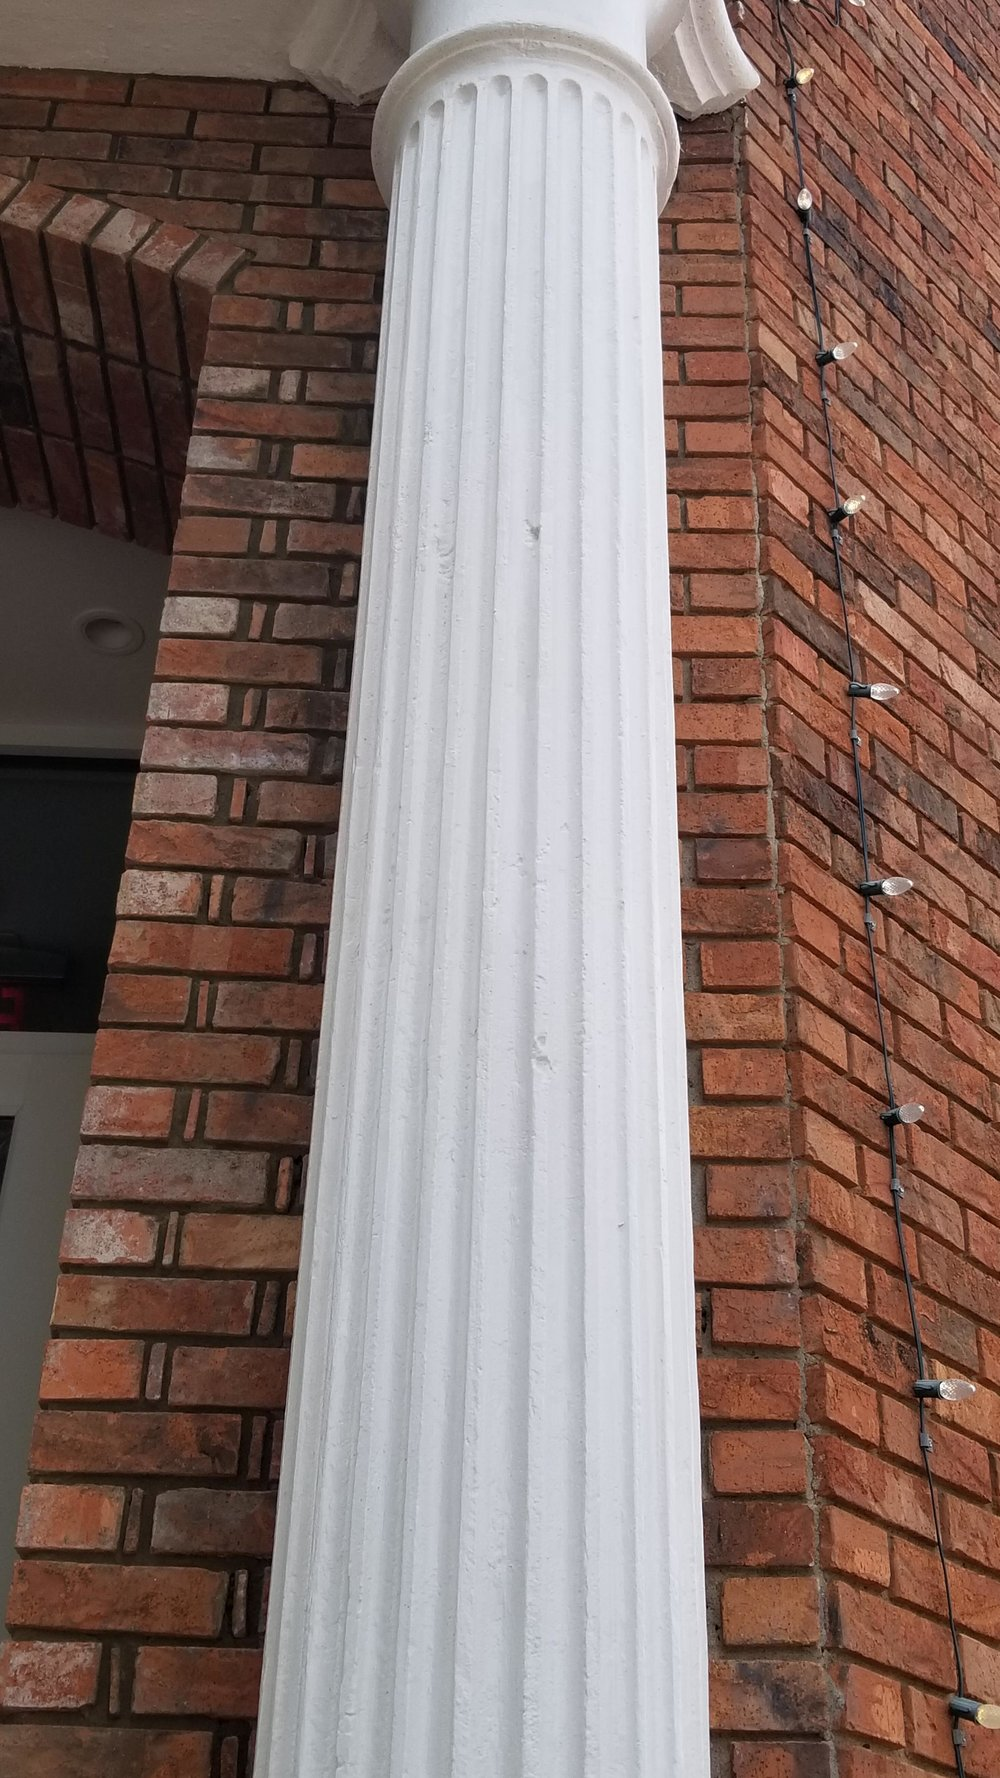 The bullet nicked iron pillar outside of the old People's bank, now Fiamma restaurant.